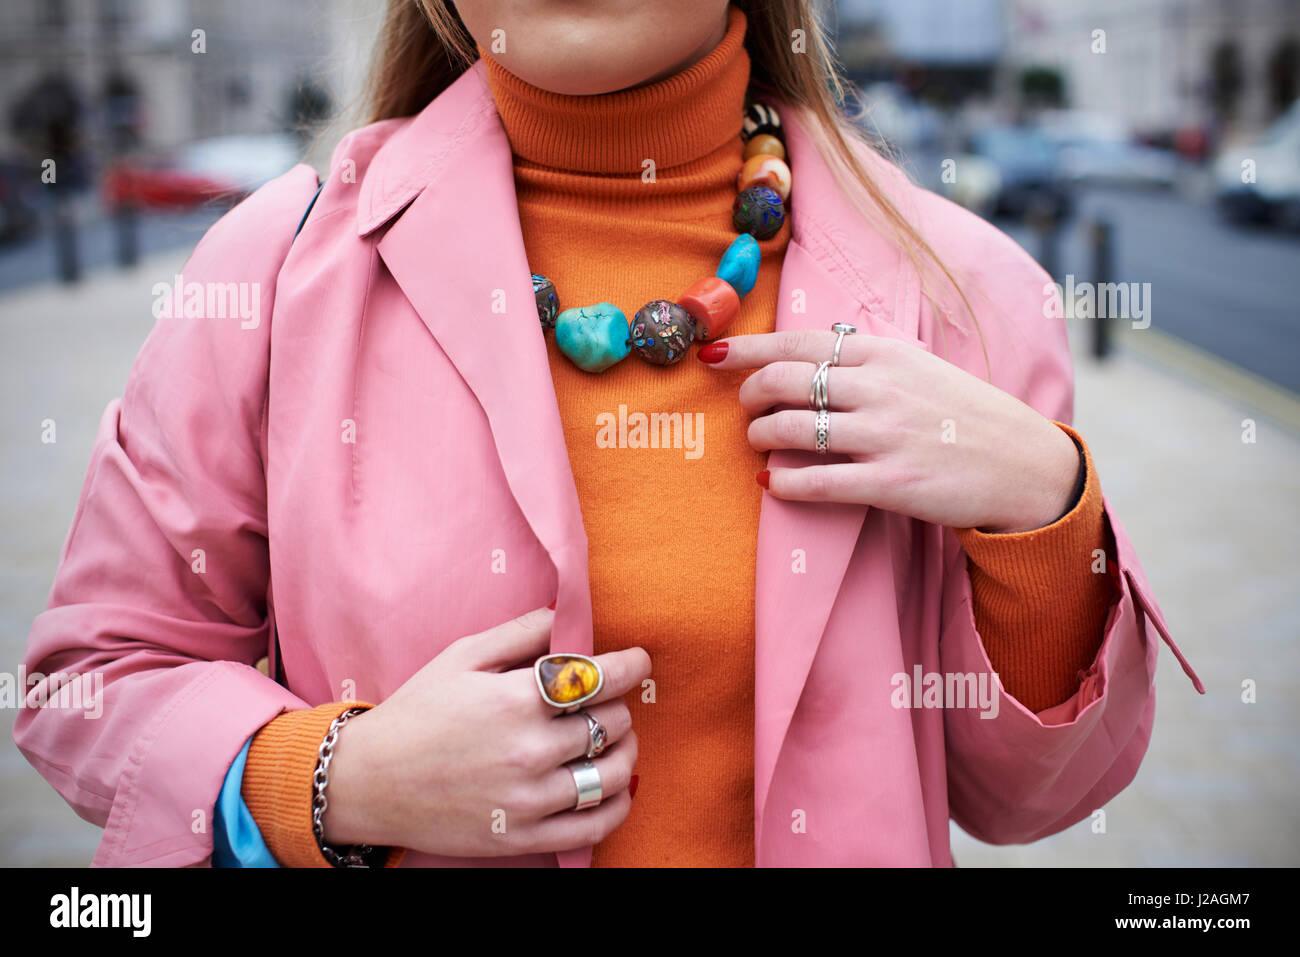 LONDON - FEBRUARY, 2017: Mid section of woman wearing pink coat and orange sweater with chunky stone necklace and - Stock Image